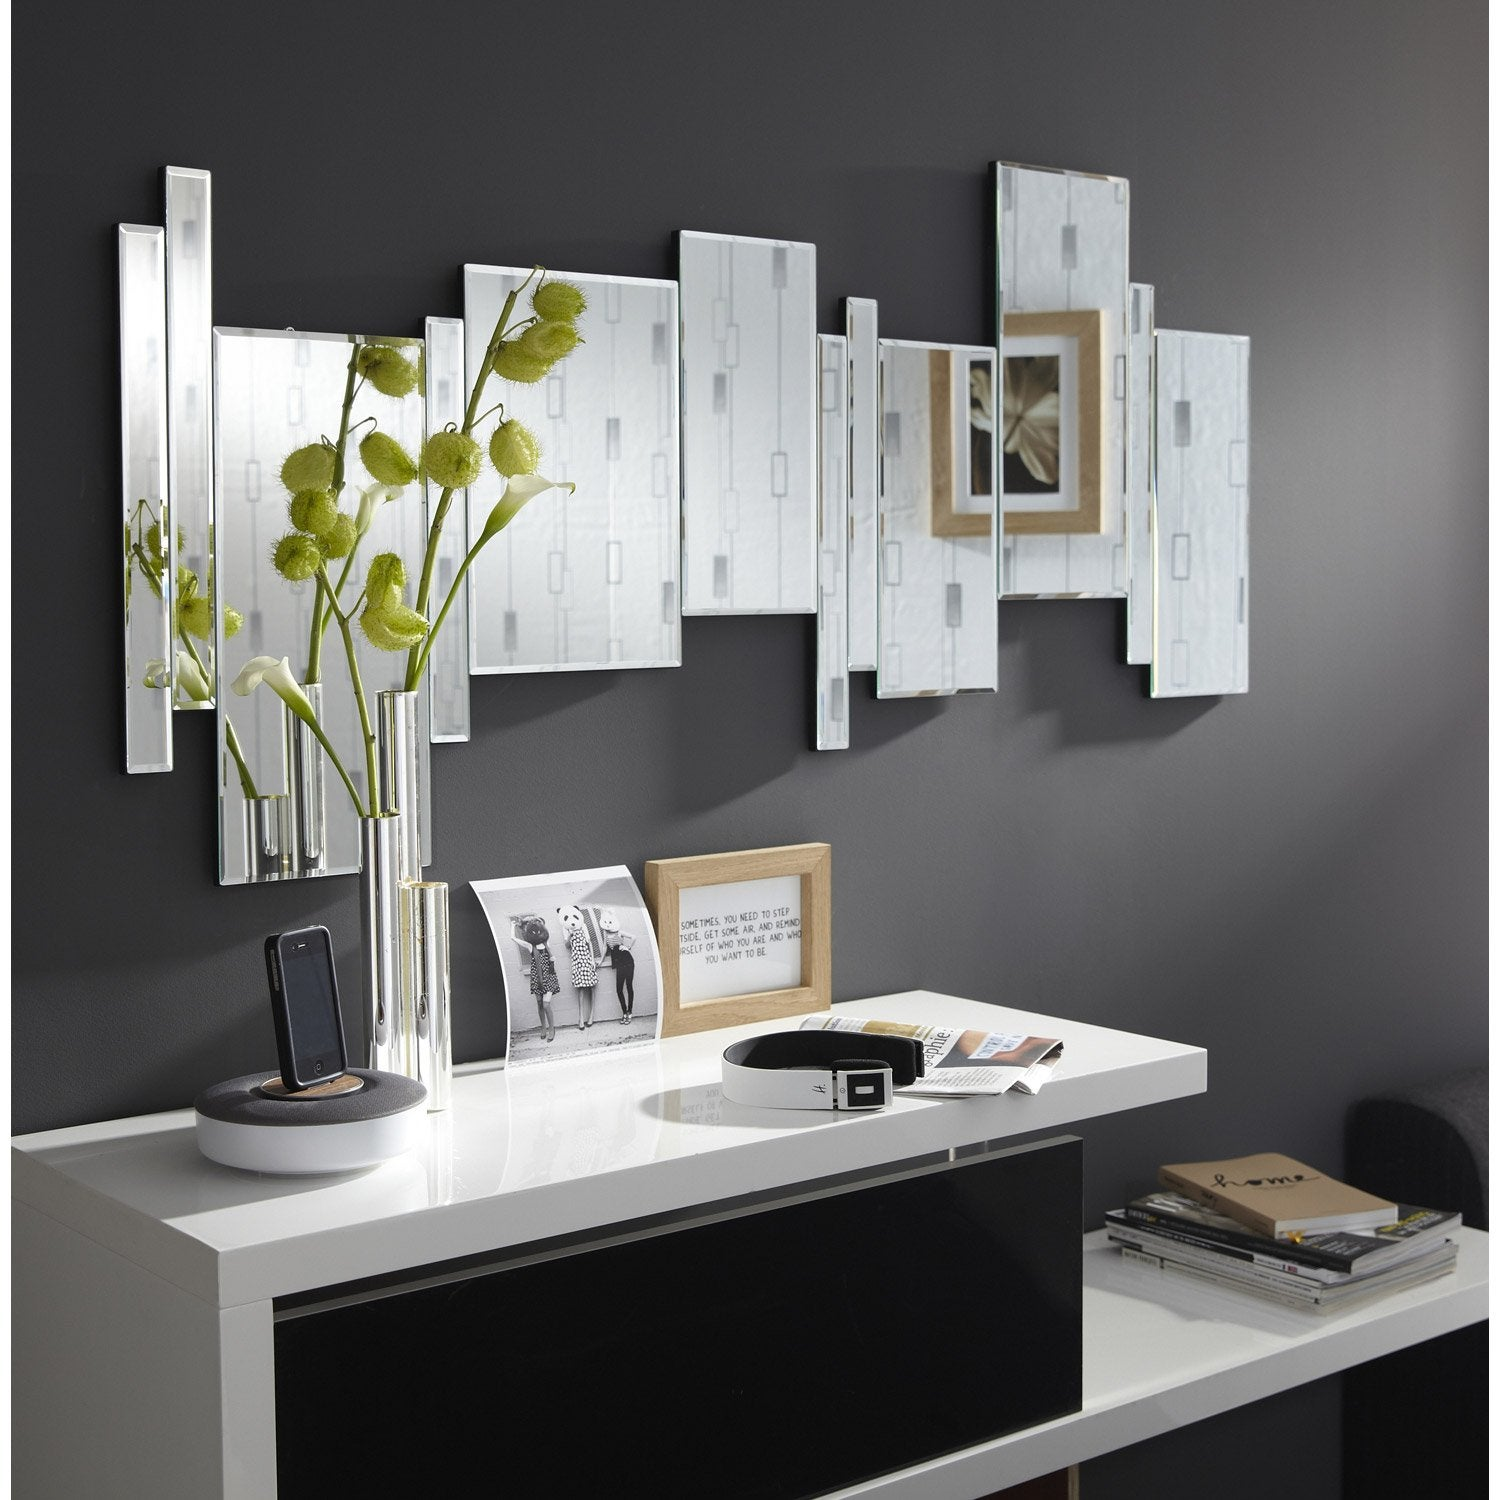 miroir axel x cm leroy merlin. Black Bedroom Furniture Sets. Home Design Ideas